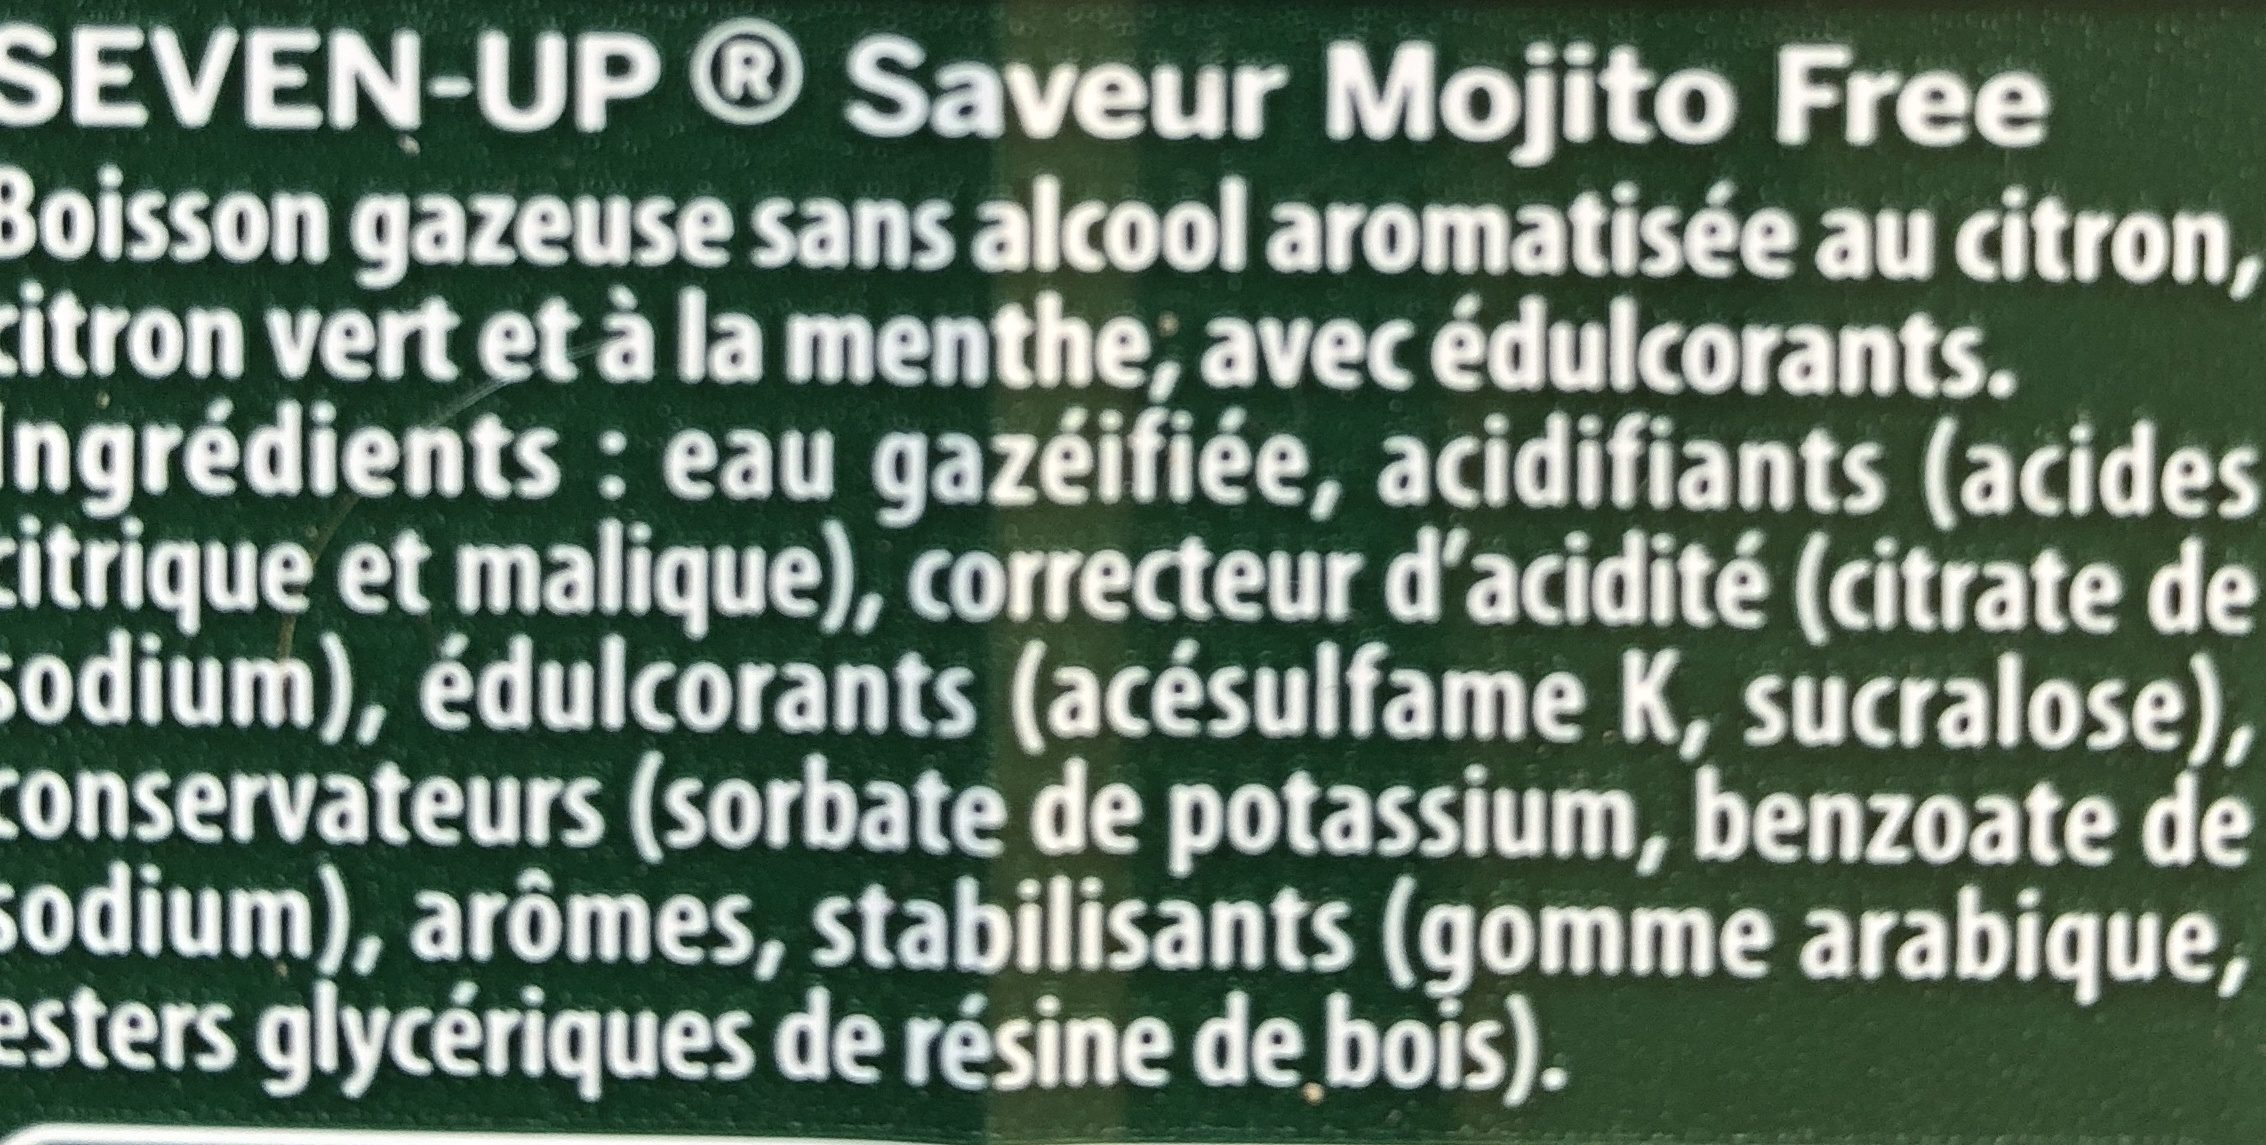 7up Mojito - Ingrédients - fr